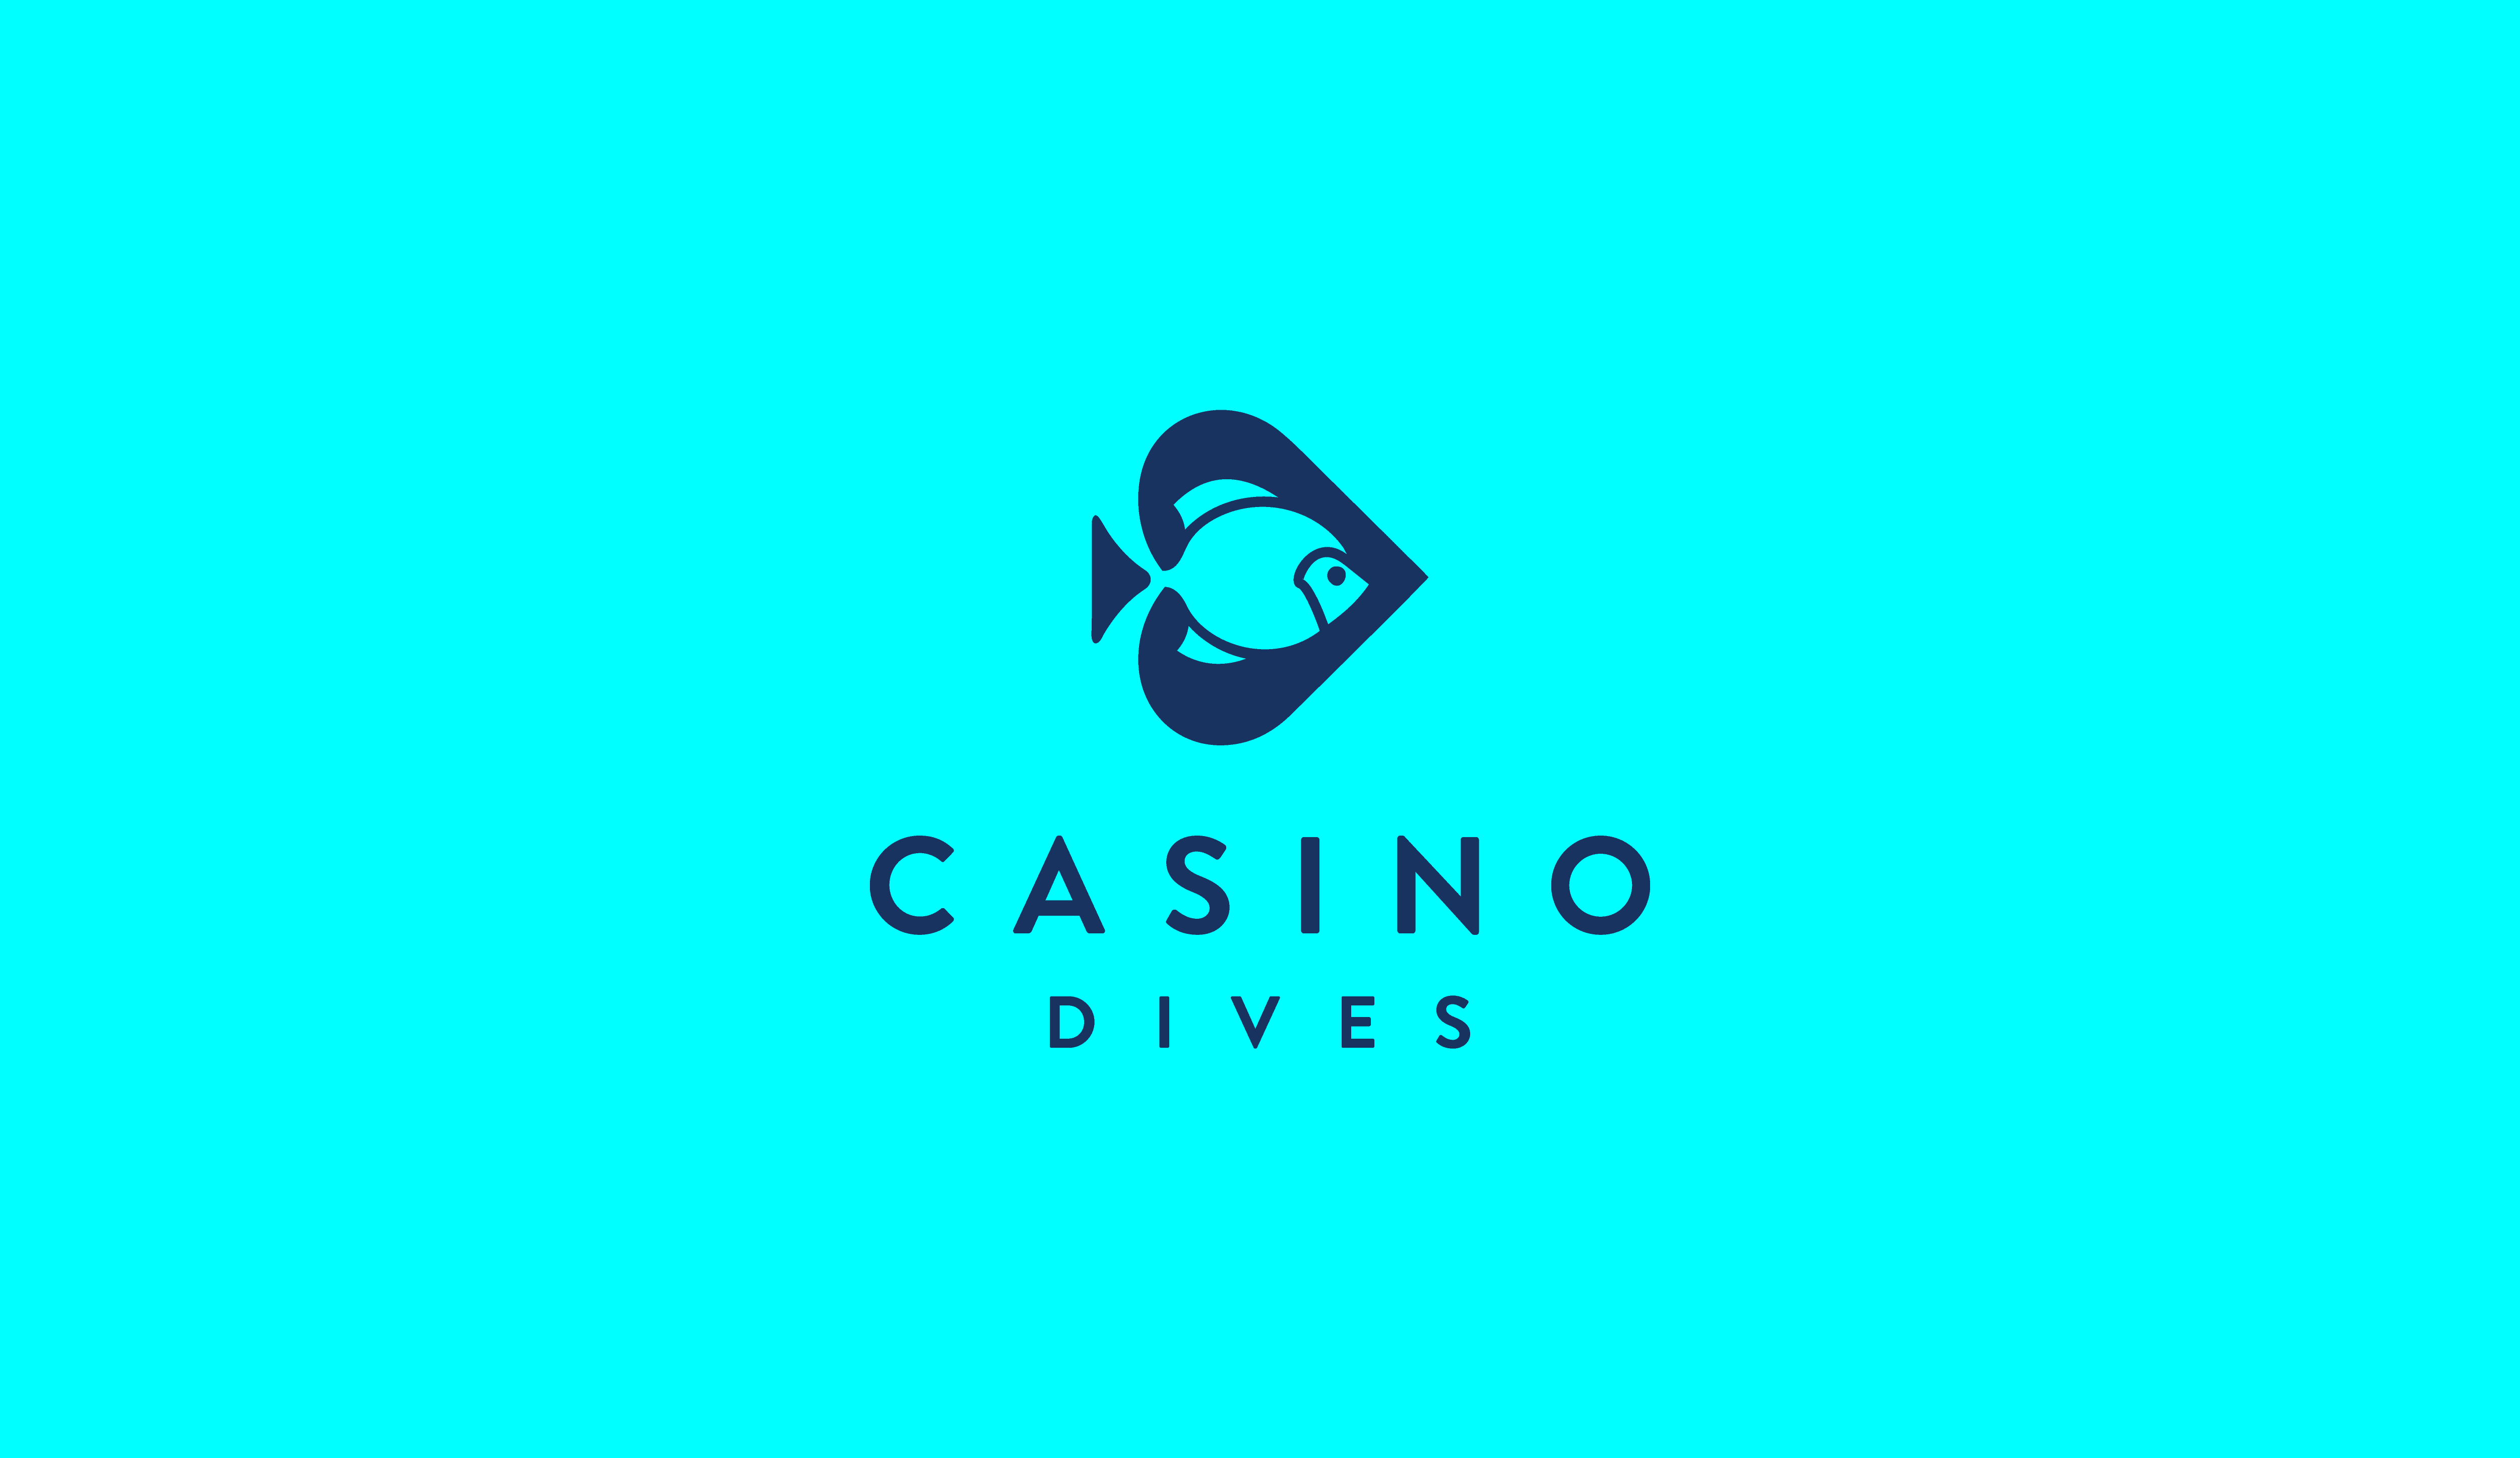 I will create a unique minimal logo design that catches the eye